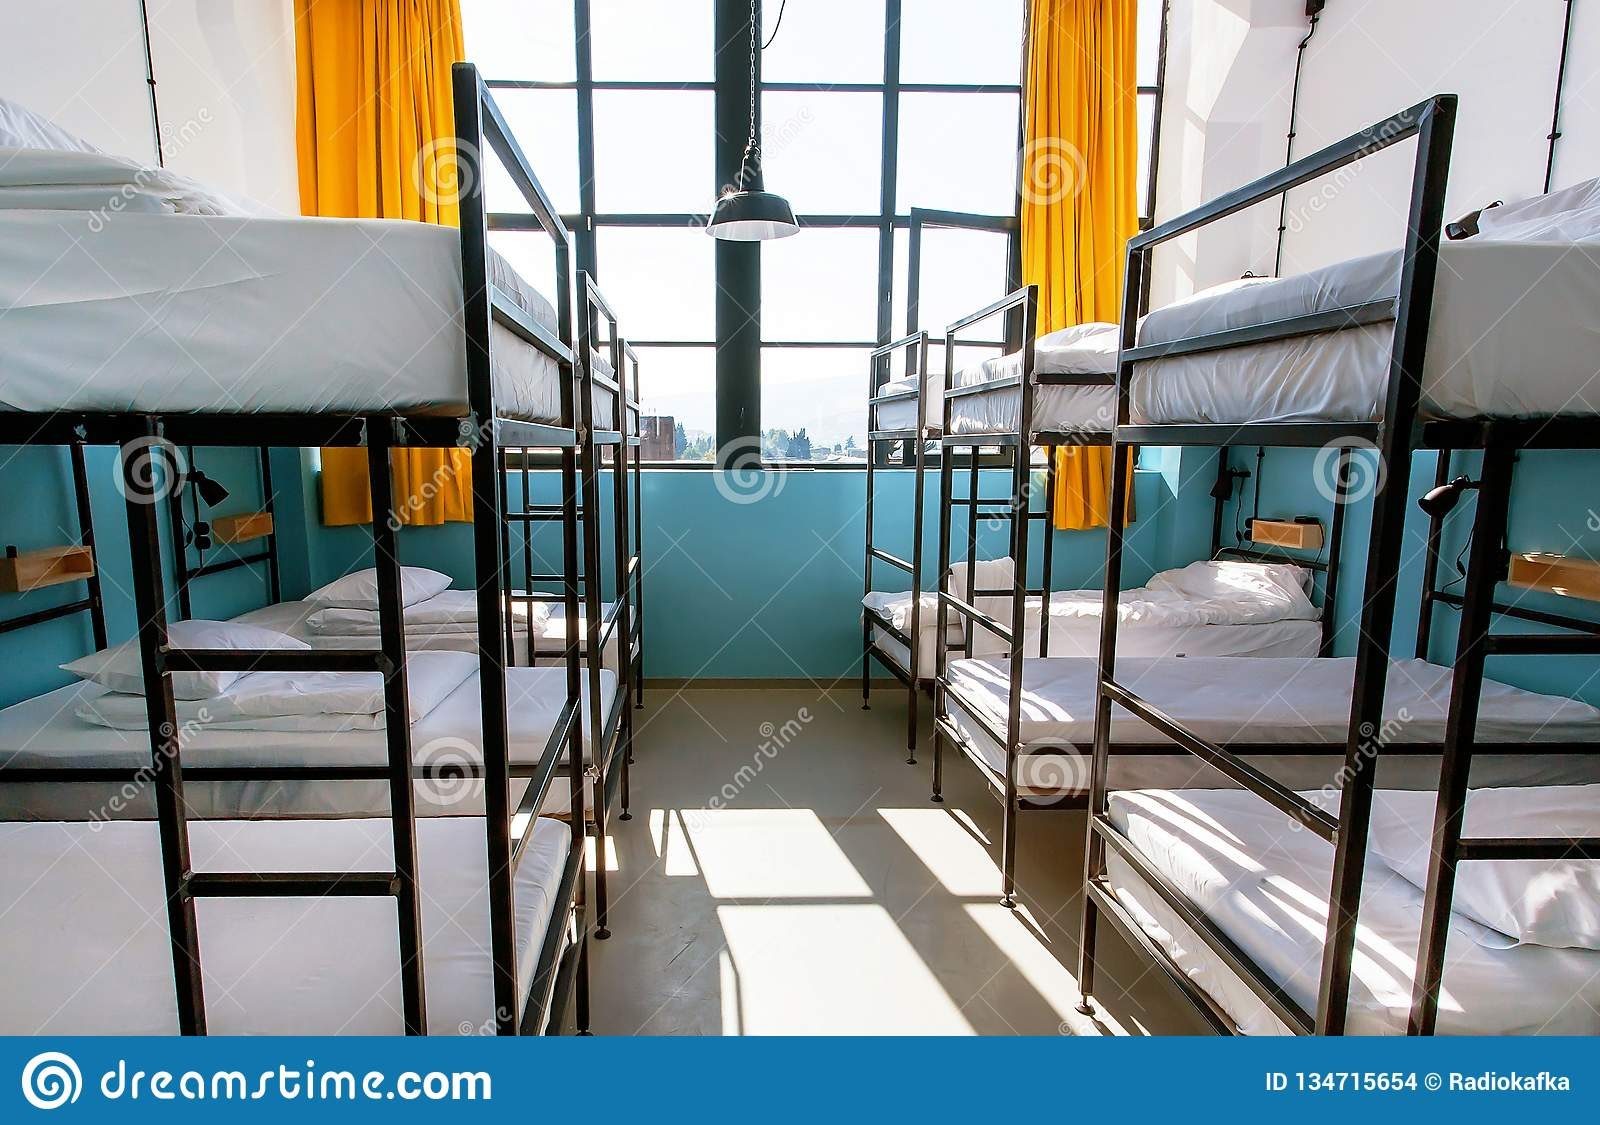 Picture of: Window Of House With Many Bunk Beds Light Bedroom With Clean Sheets Stock Photo Image Of Floor European 134715654